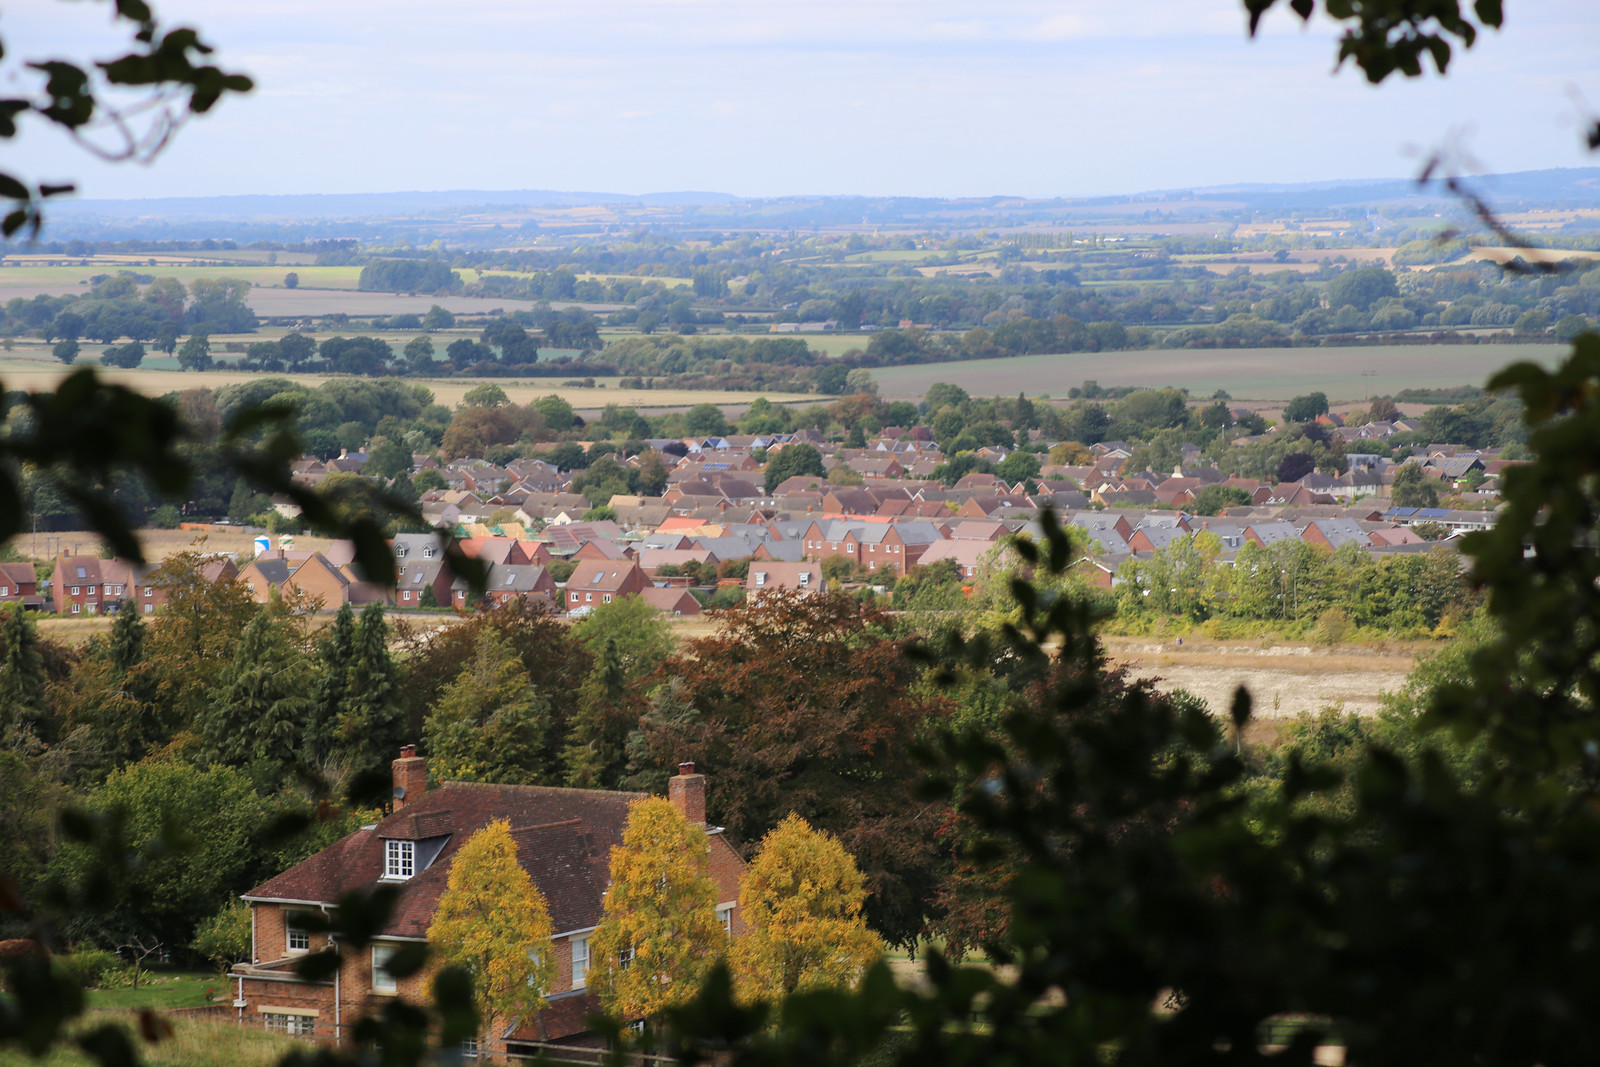 The Chiltern hills near Chinnor